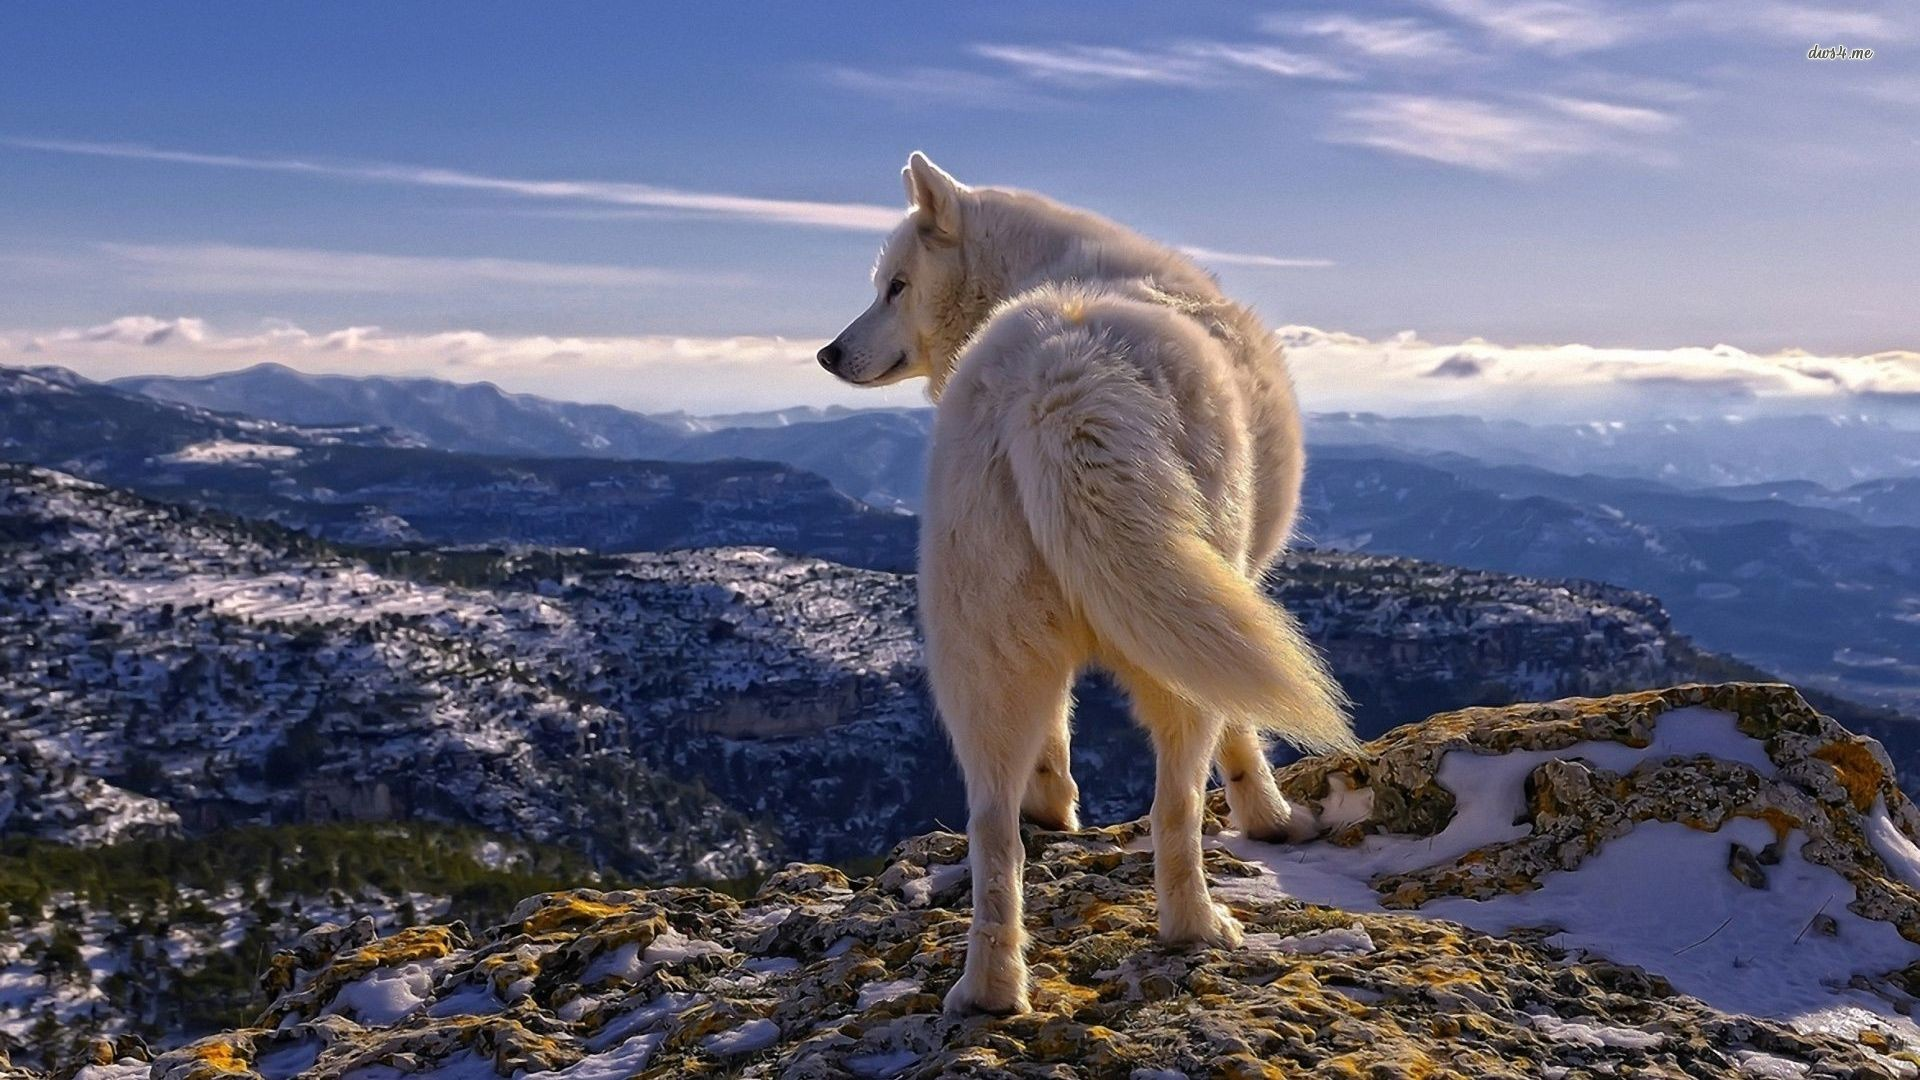 Amazing Wallpaper Mac Wolf - 995171-white-wolf-wallpaper-1920x1080-for-macbook  HD_97759.jpg